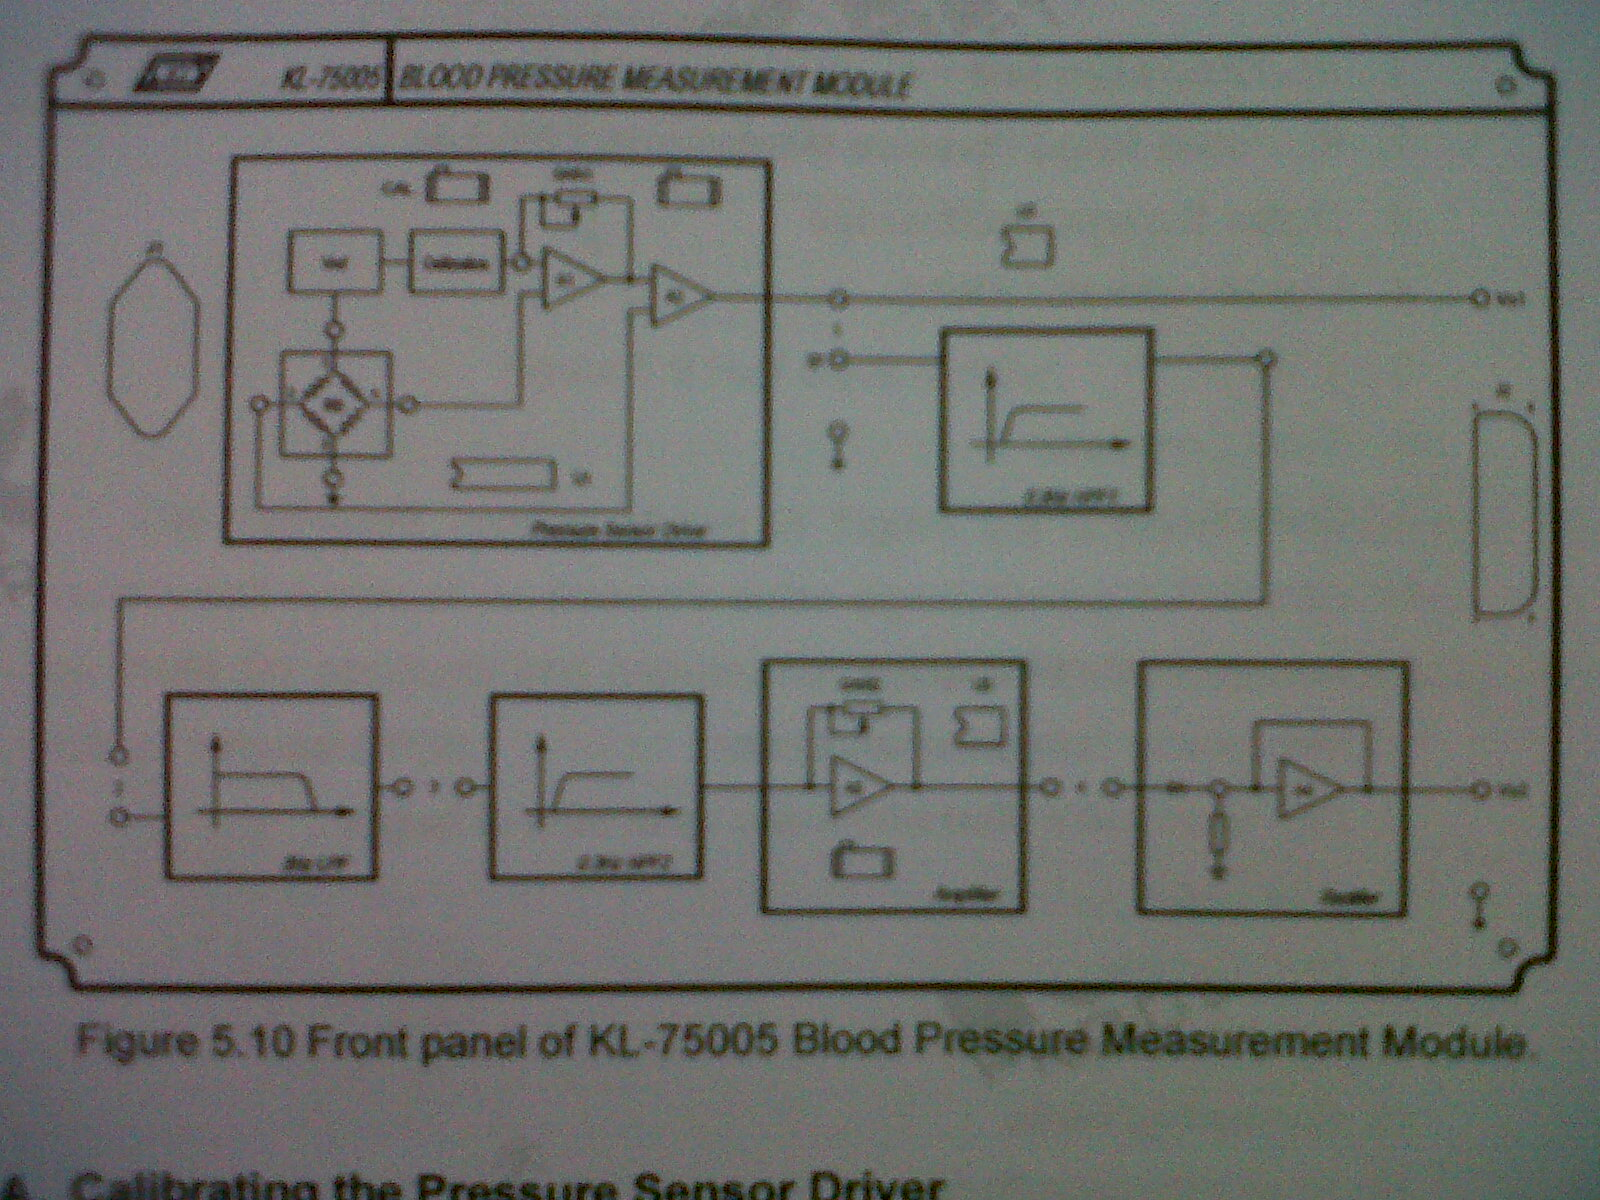 Final Year Project Home Patient Monitor March 2012 Pass Filter Circuit Diagram For High It Shows How The Begins With Sensor Driving And Signal Flows From Hpf To Low Lpf Finally